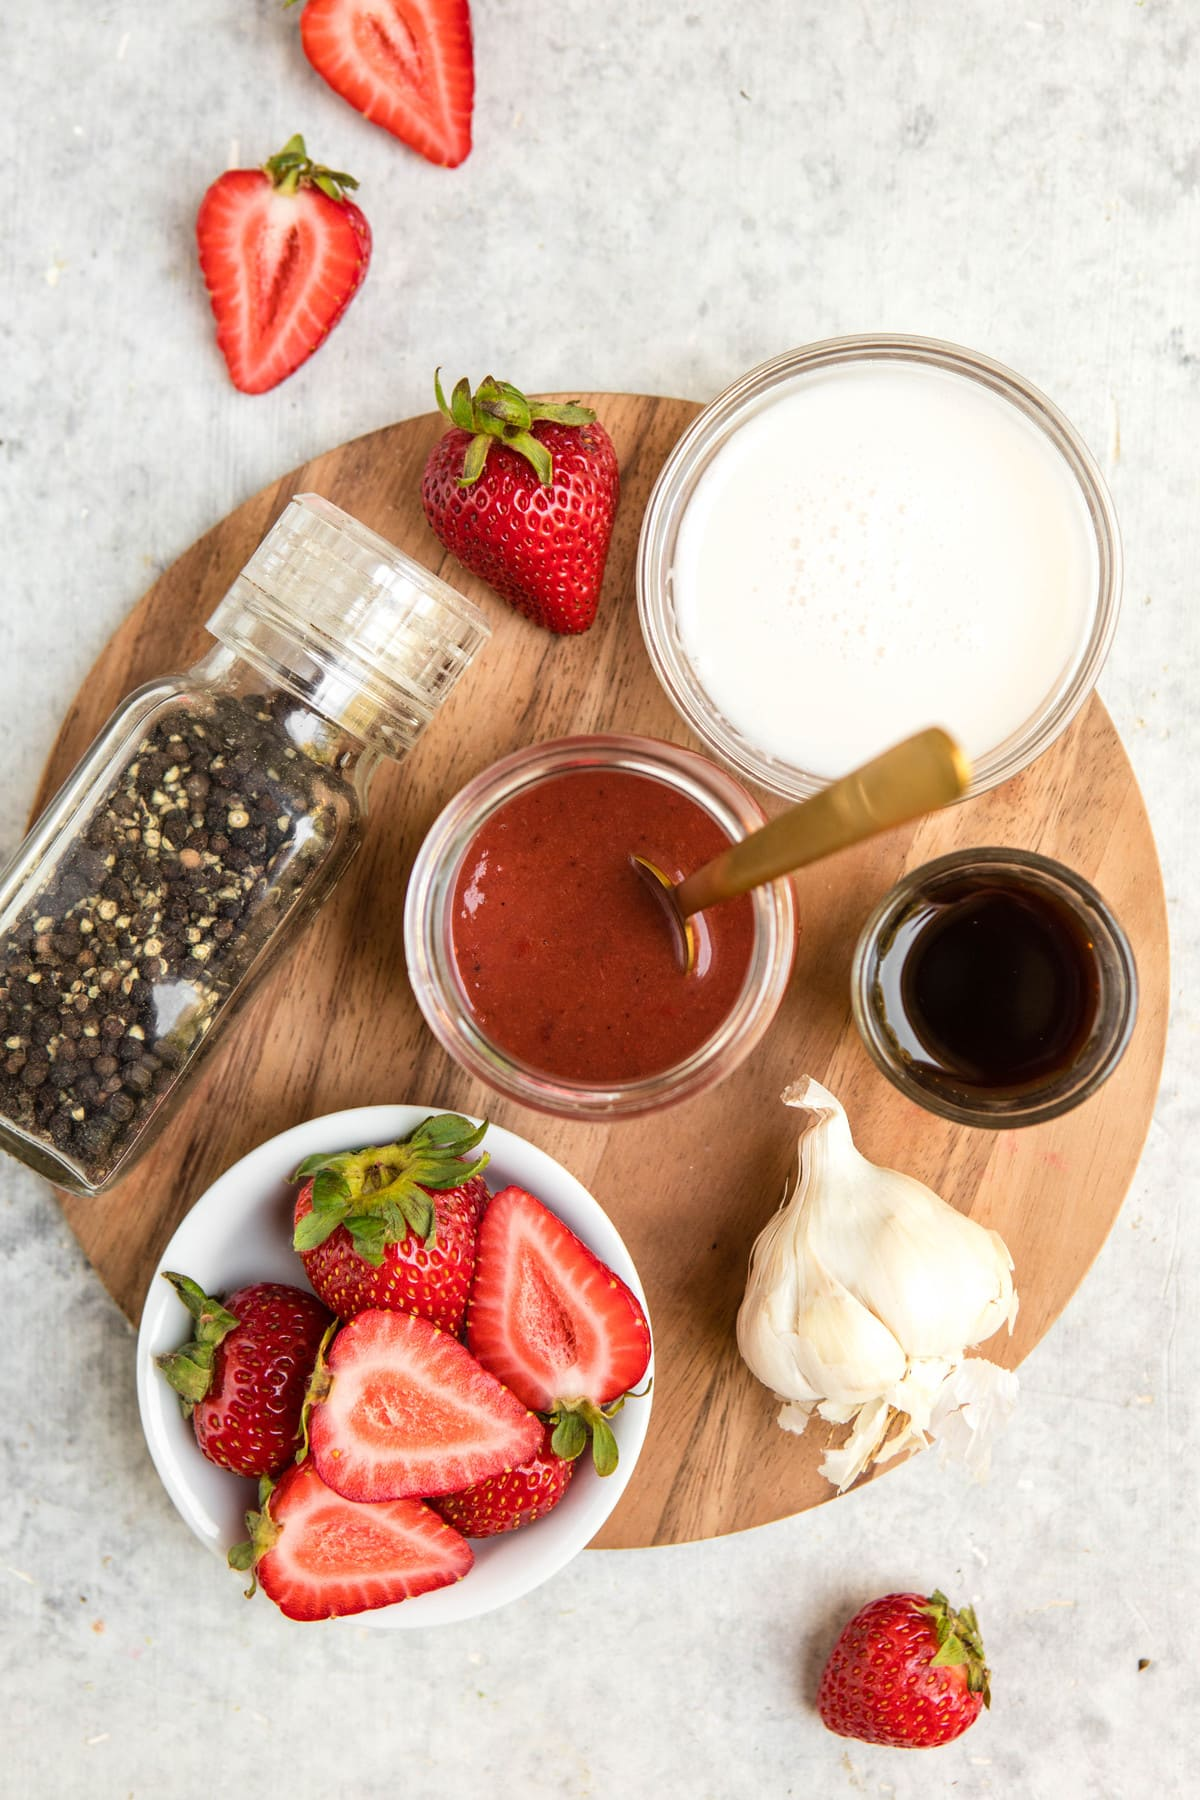 ingredients for roasted strawberry vinaigrette on cutting board